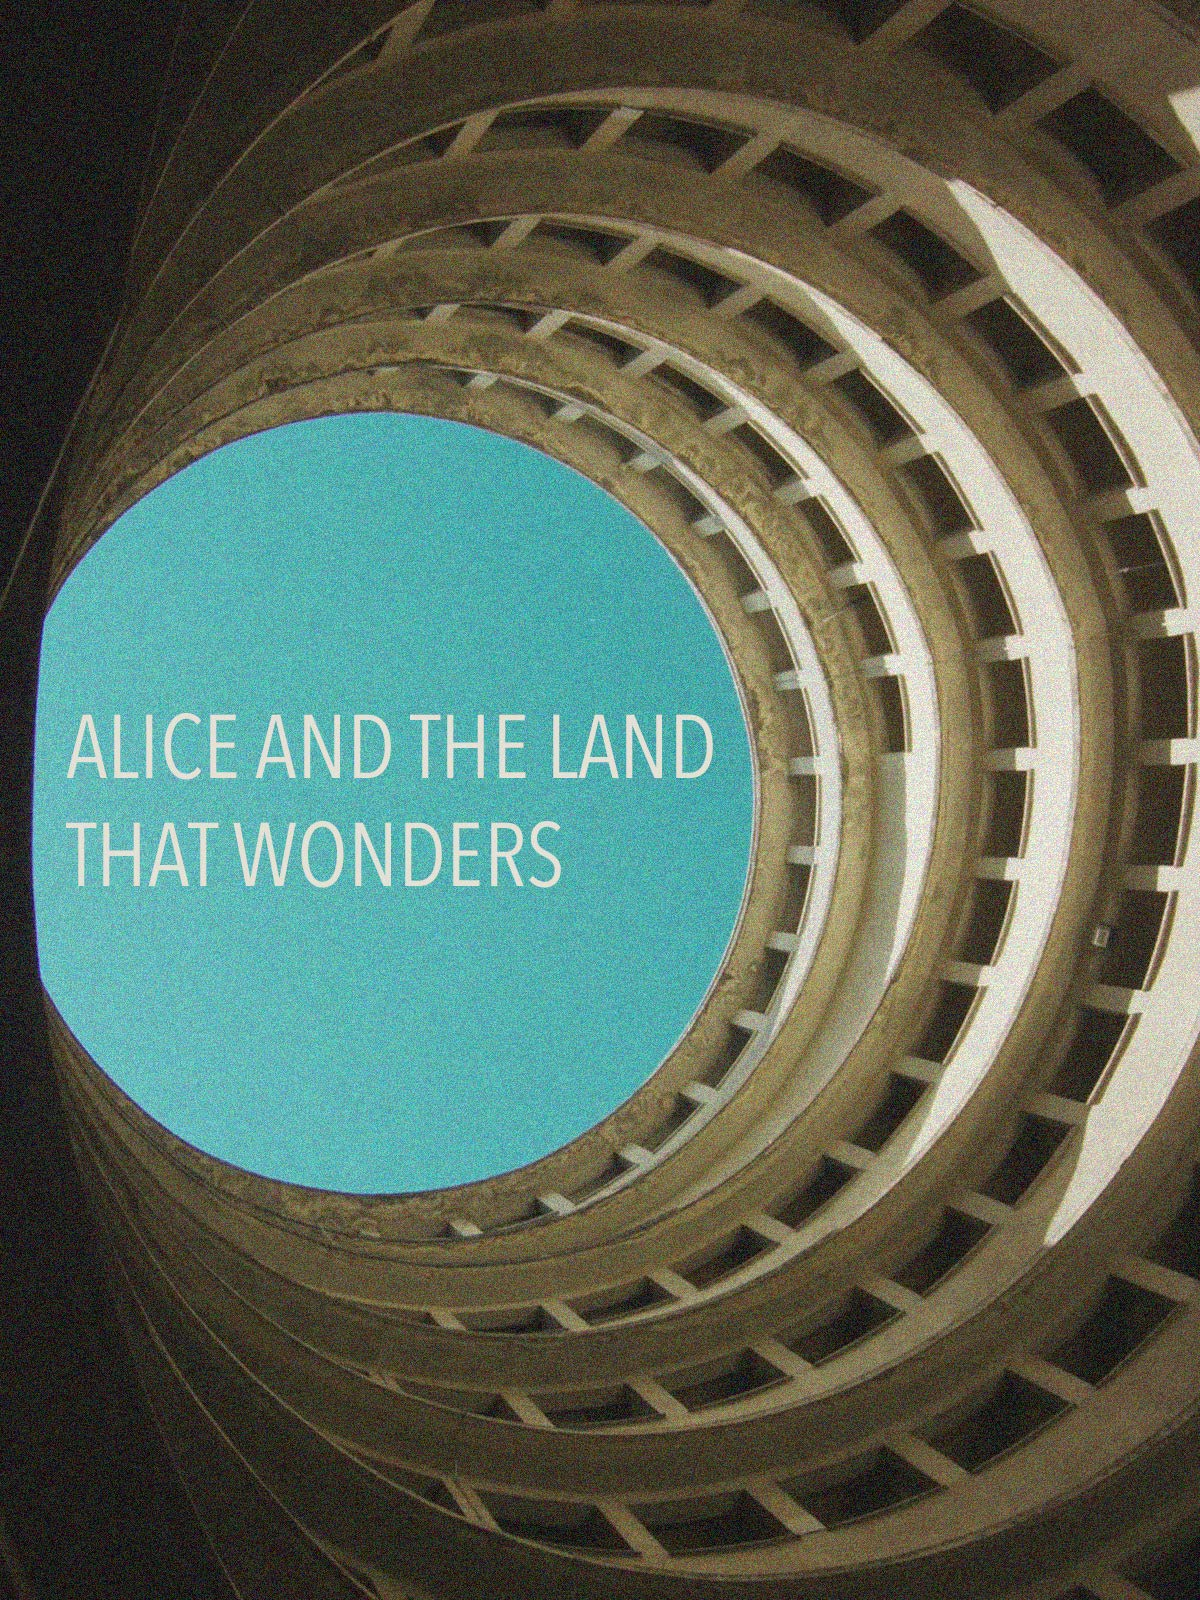 Alice and the land that wonders